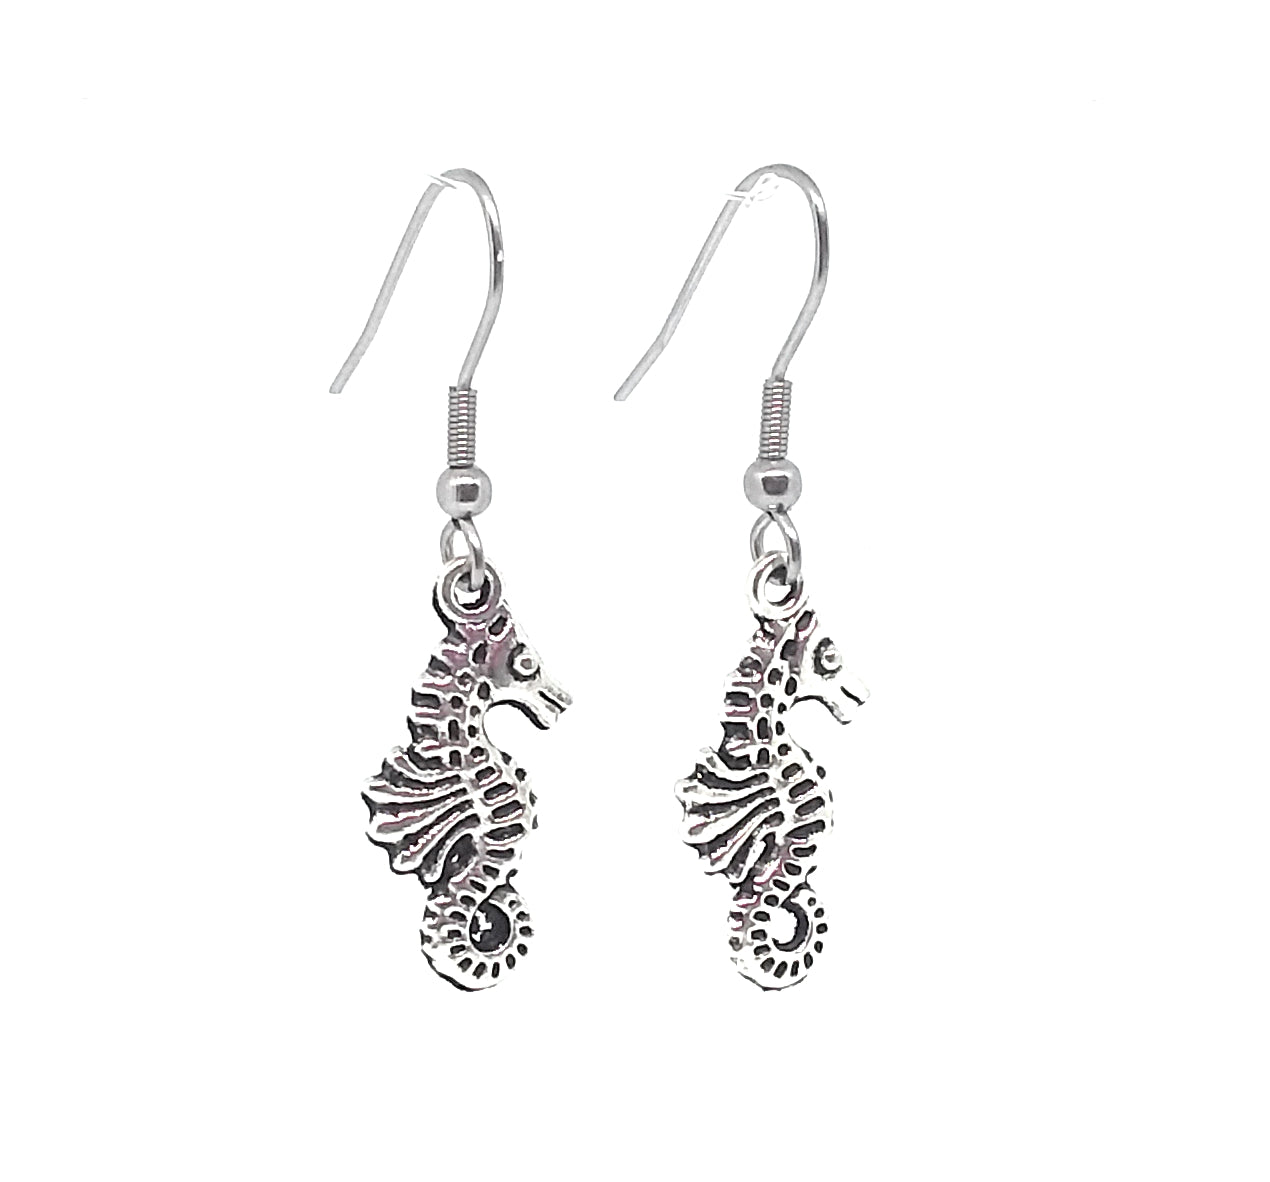 Seahorse Charm Dangle Earrings with Stainless Steel Ear Wires